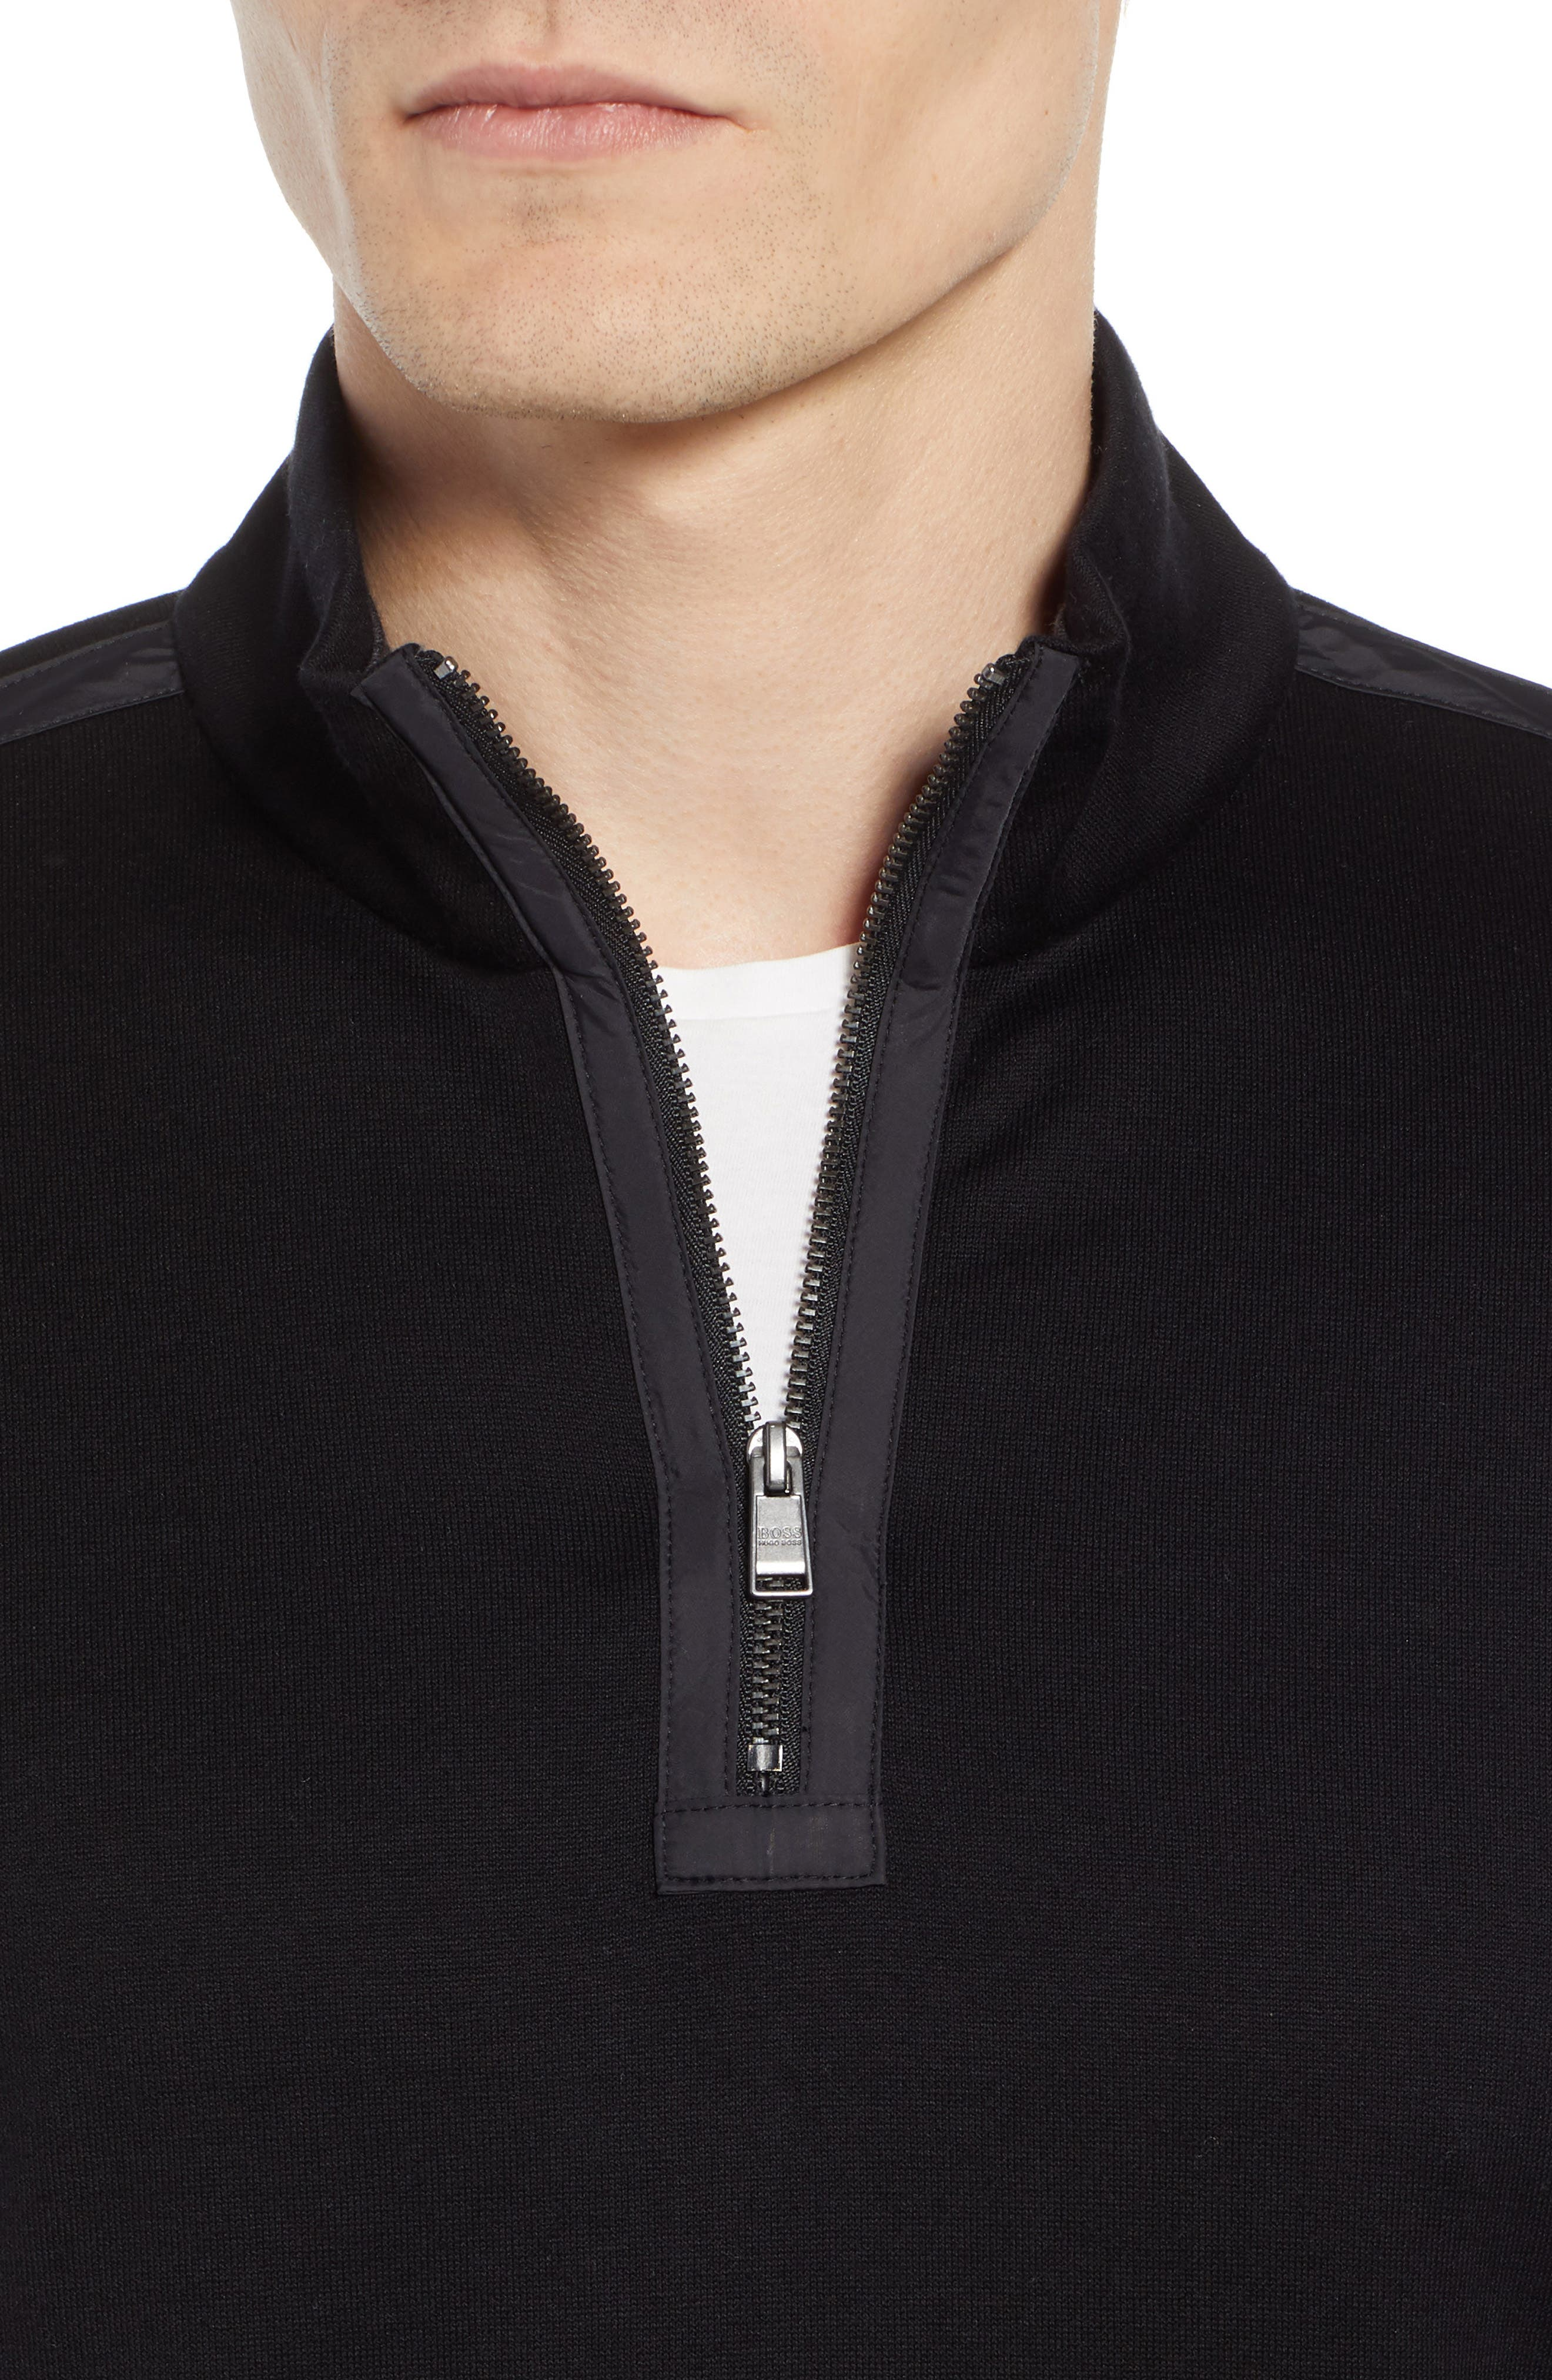 Sidney Regular Fit Quarter Zip Pullover,                             Alternate thumbnail 4, color,                             BLACK